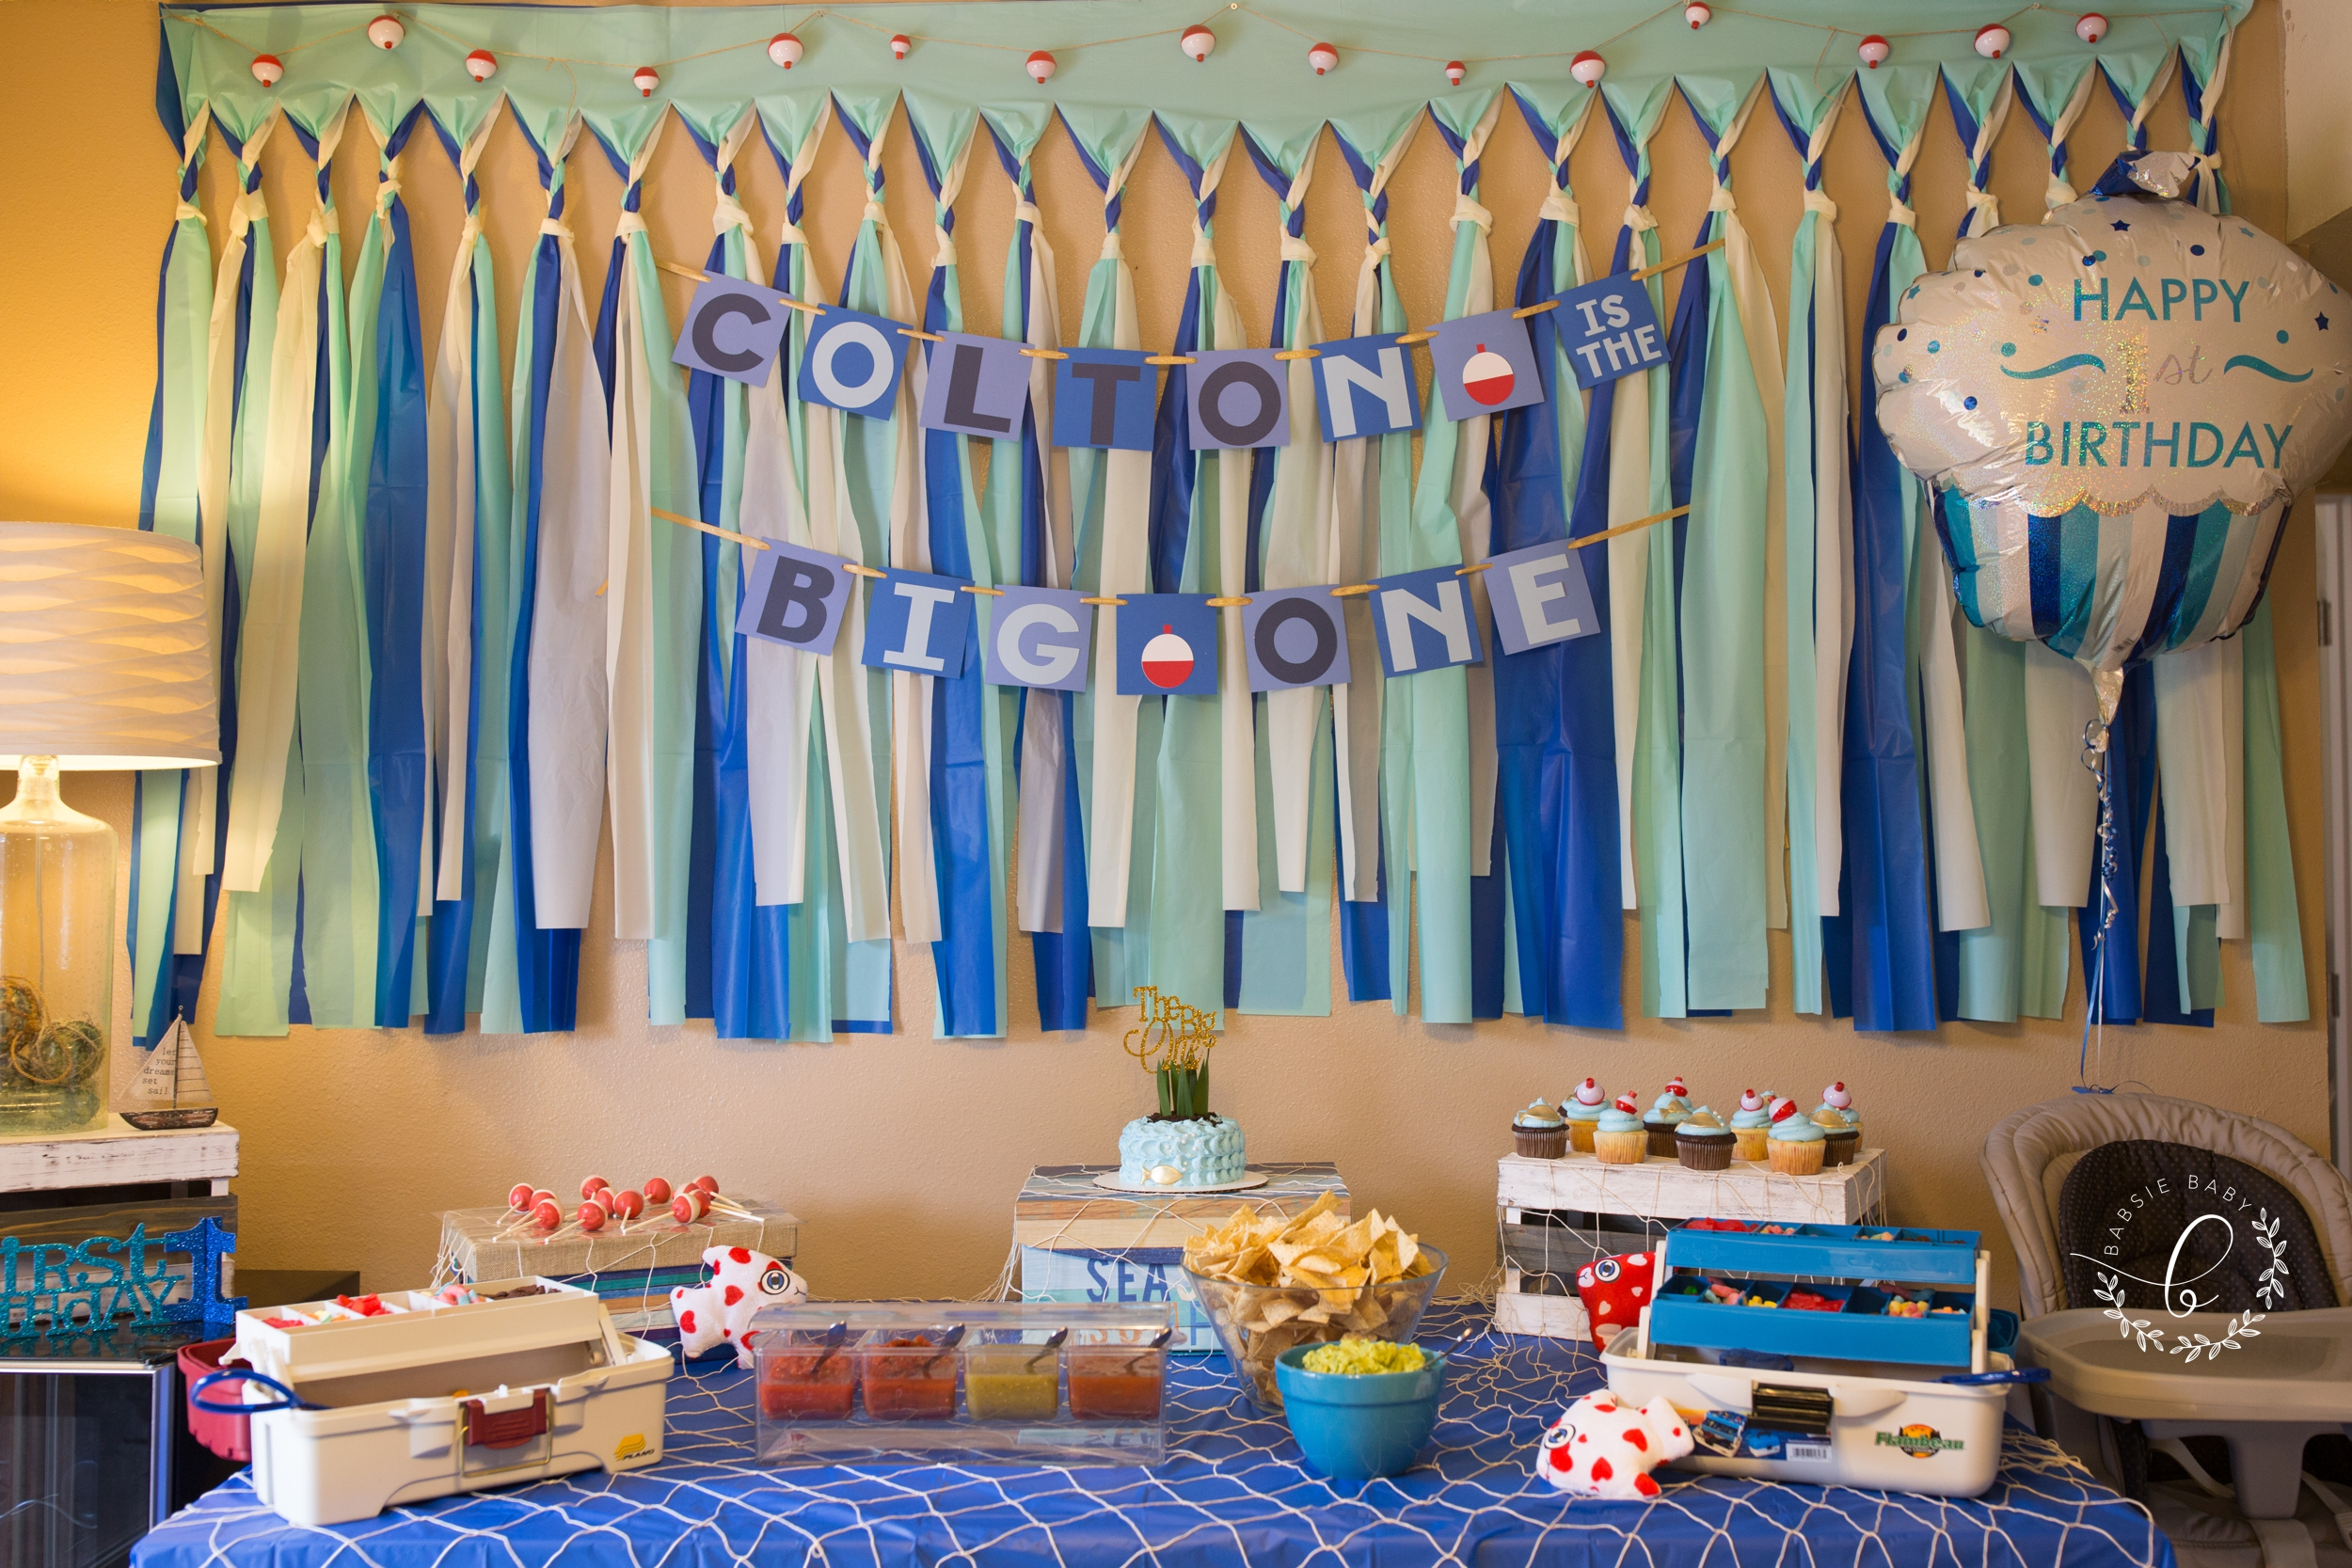 Babsie-Baby-Photography-Colton-1-Year-Old-Birthday-San-Diego-Oceanside-California-013.JPG